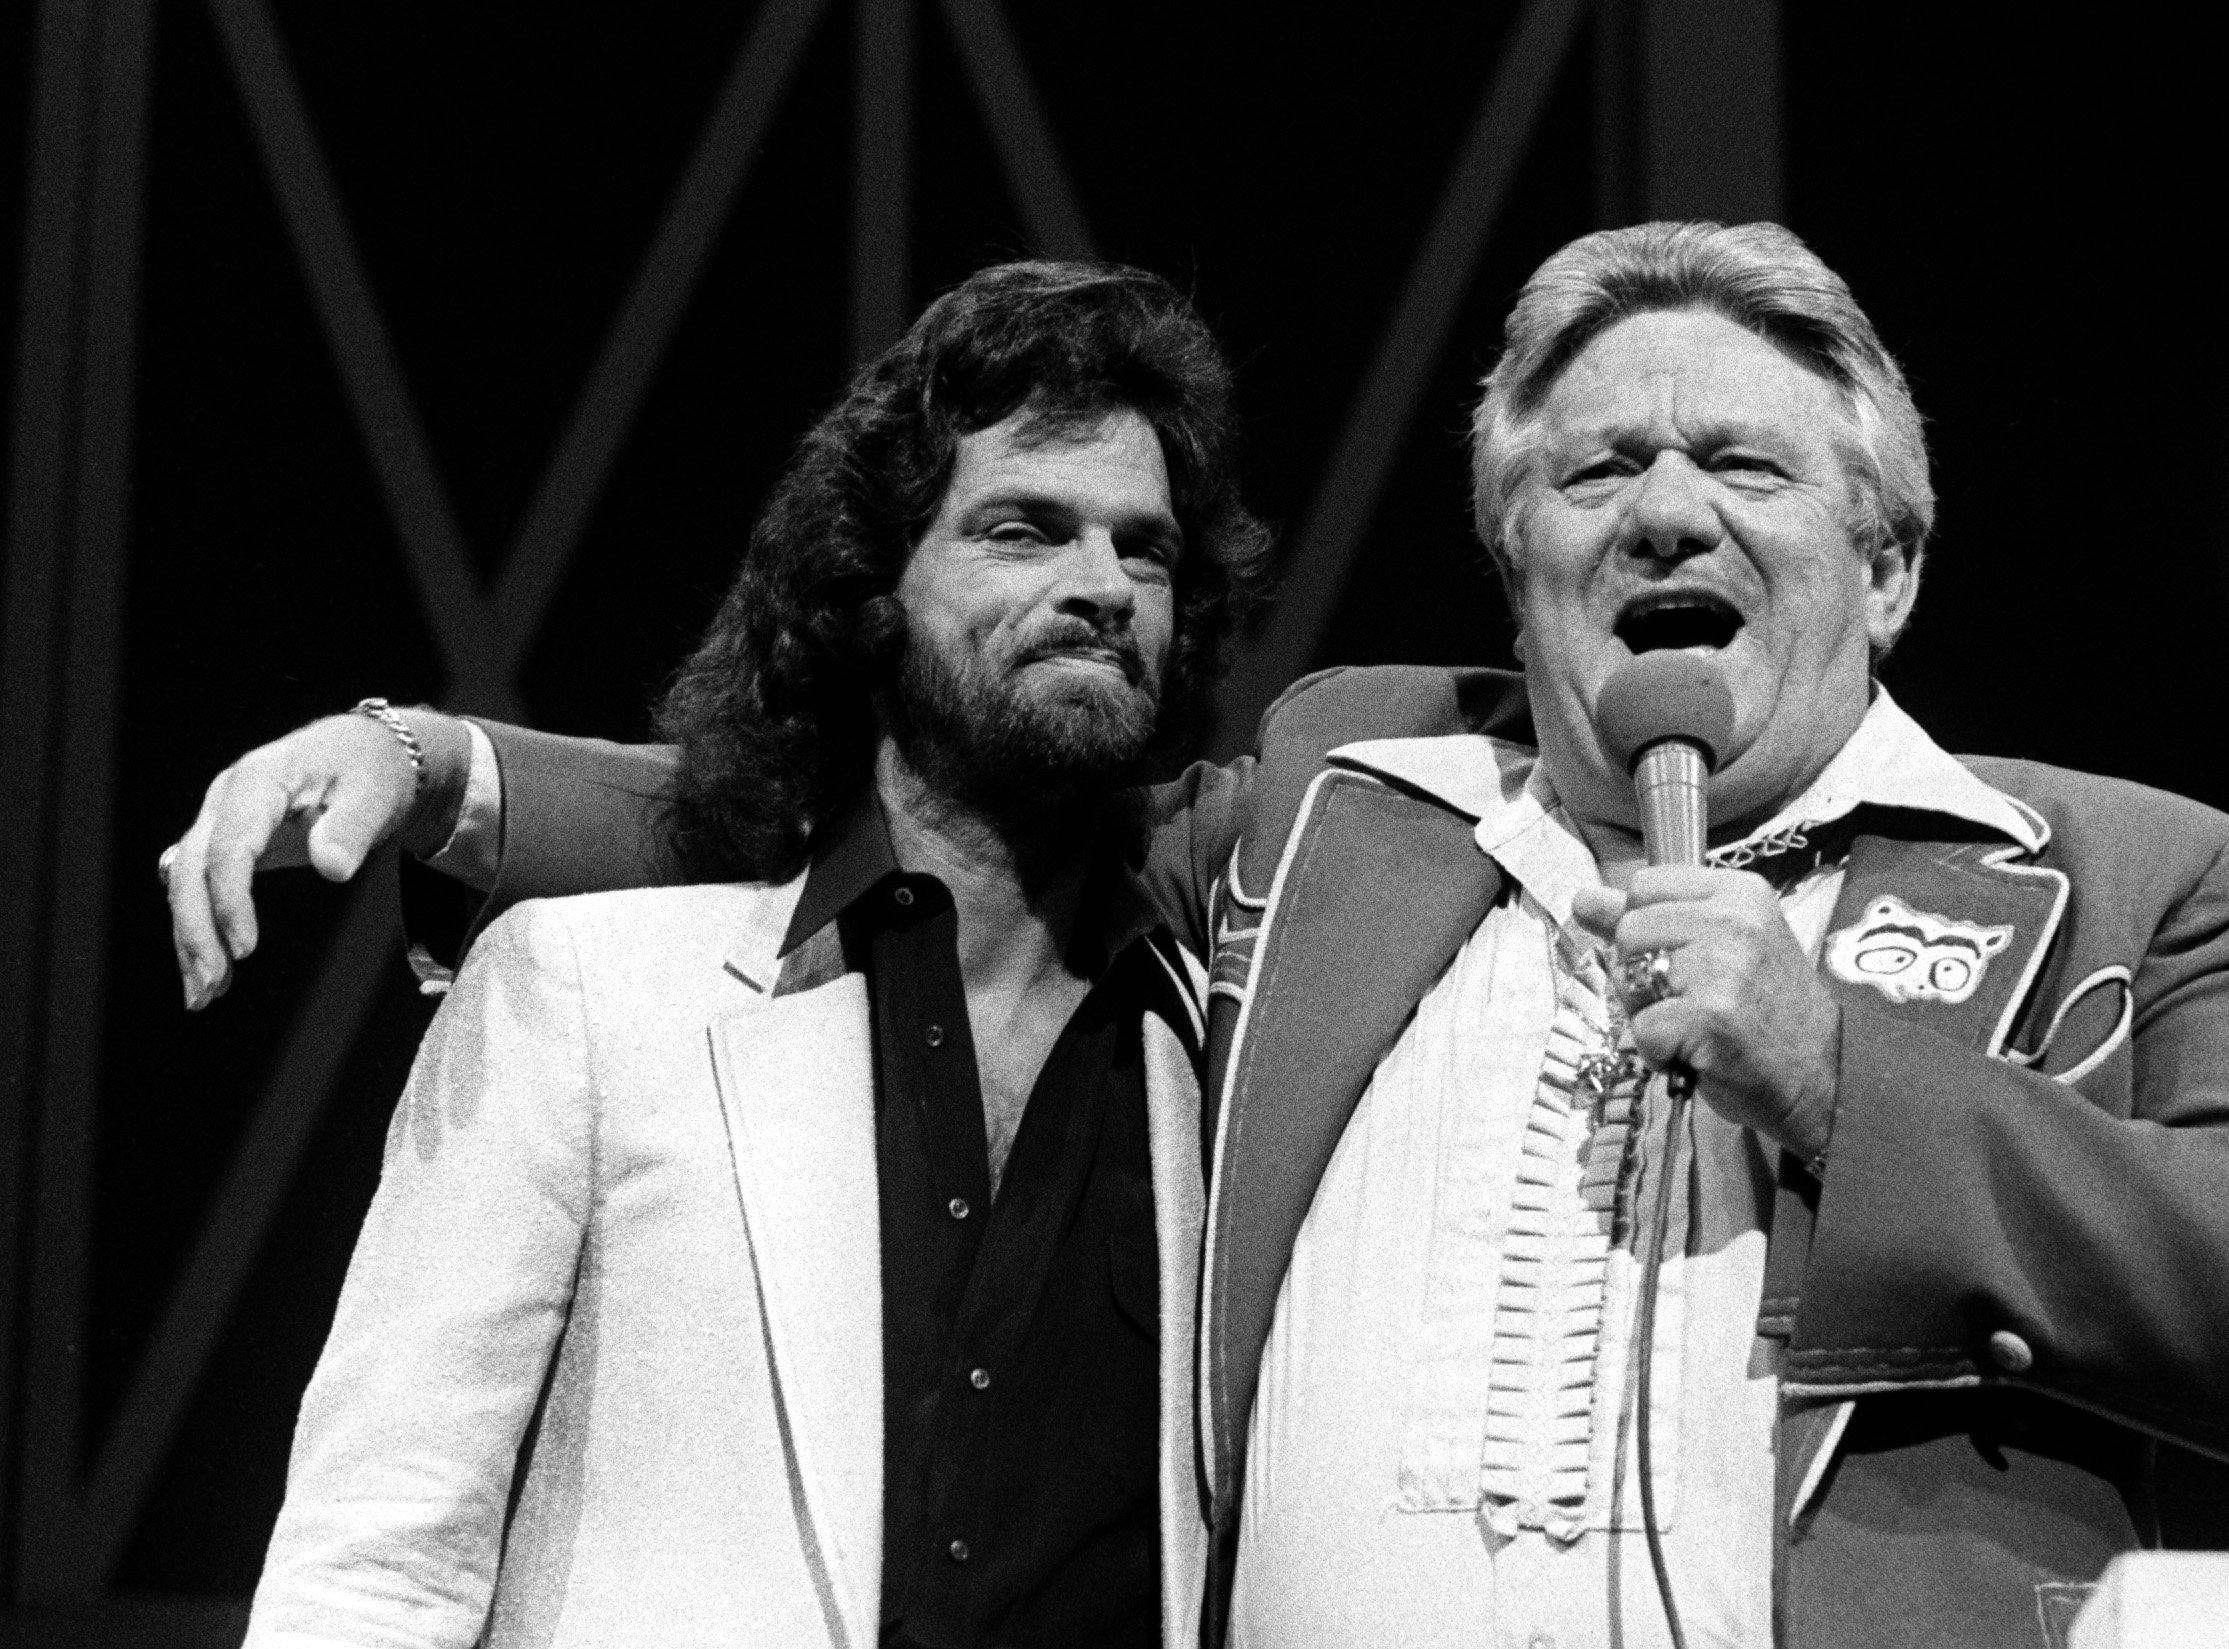 B.J. Thomas and Jerry Clower 1---B.J. Thomas makes his debut as the newest member of the Grand Ole Opry on Aug. 7, 1981. He was introduced by country humorist Jerry Clower.